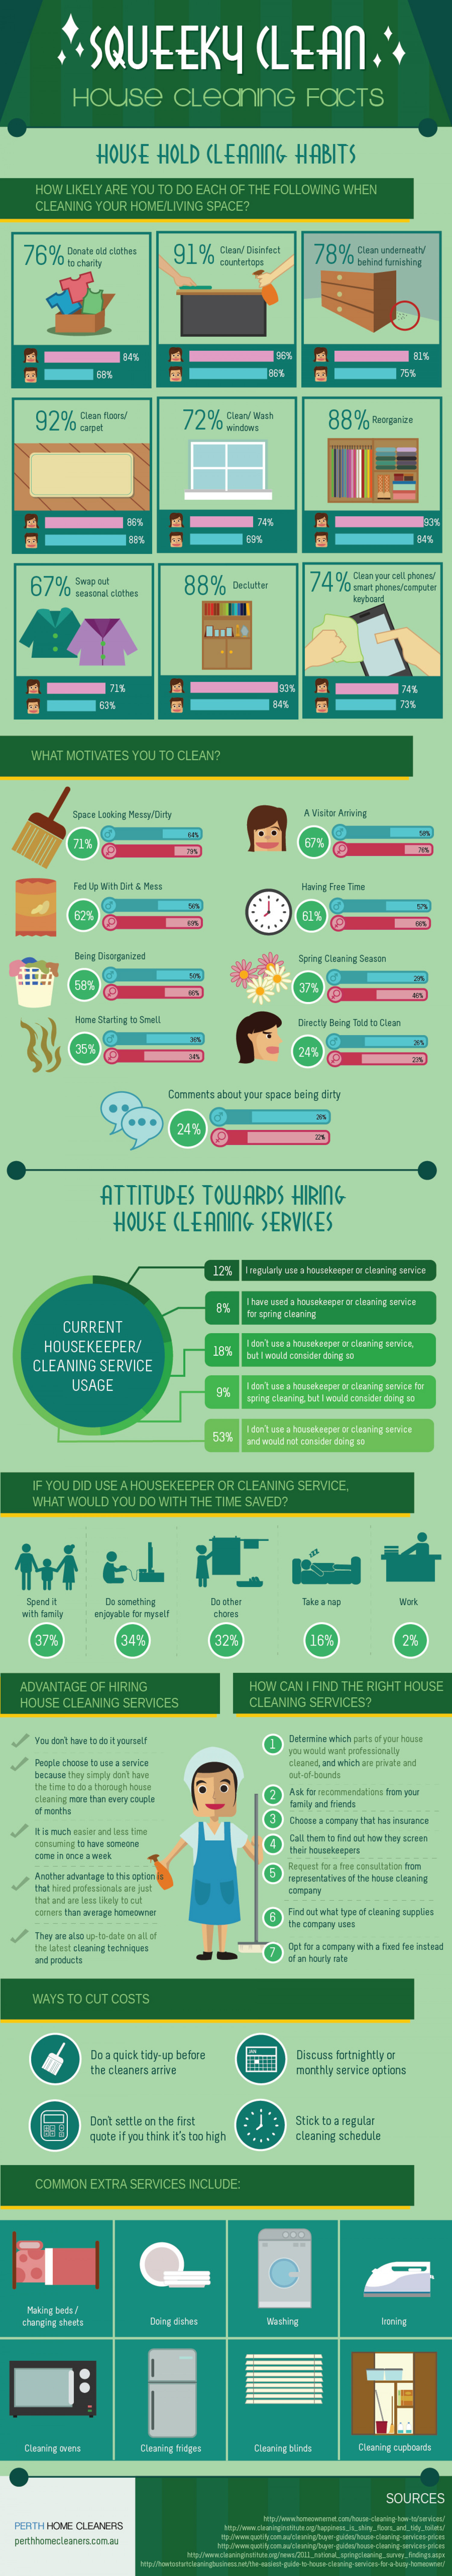 Squeaky Clean: House Cleaning Facts Infographic